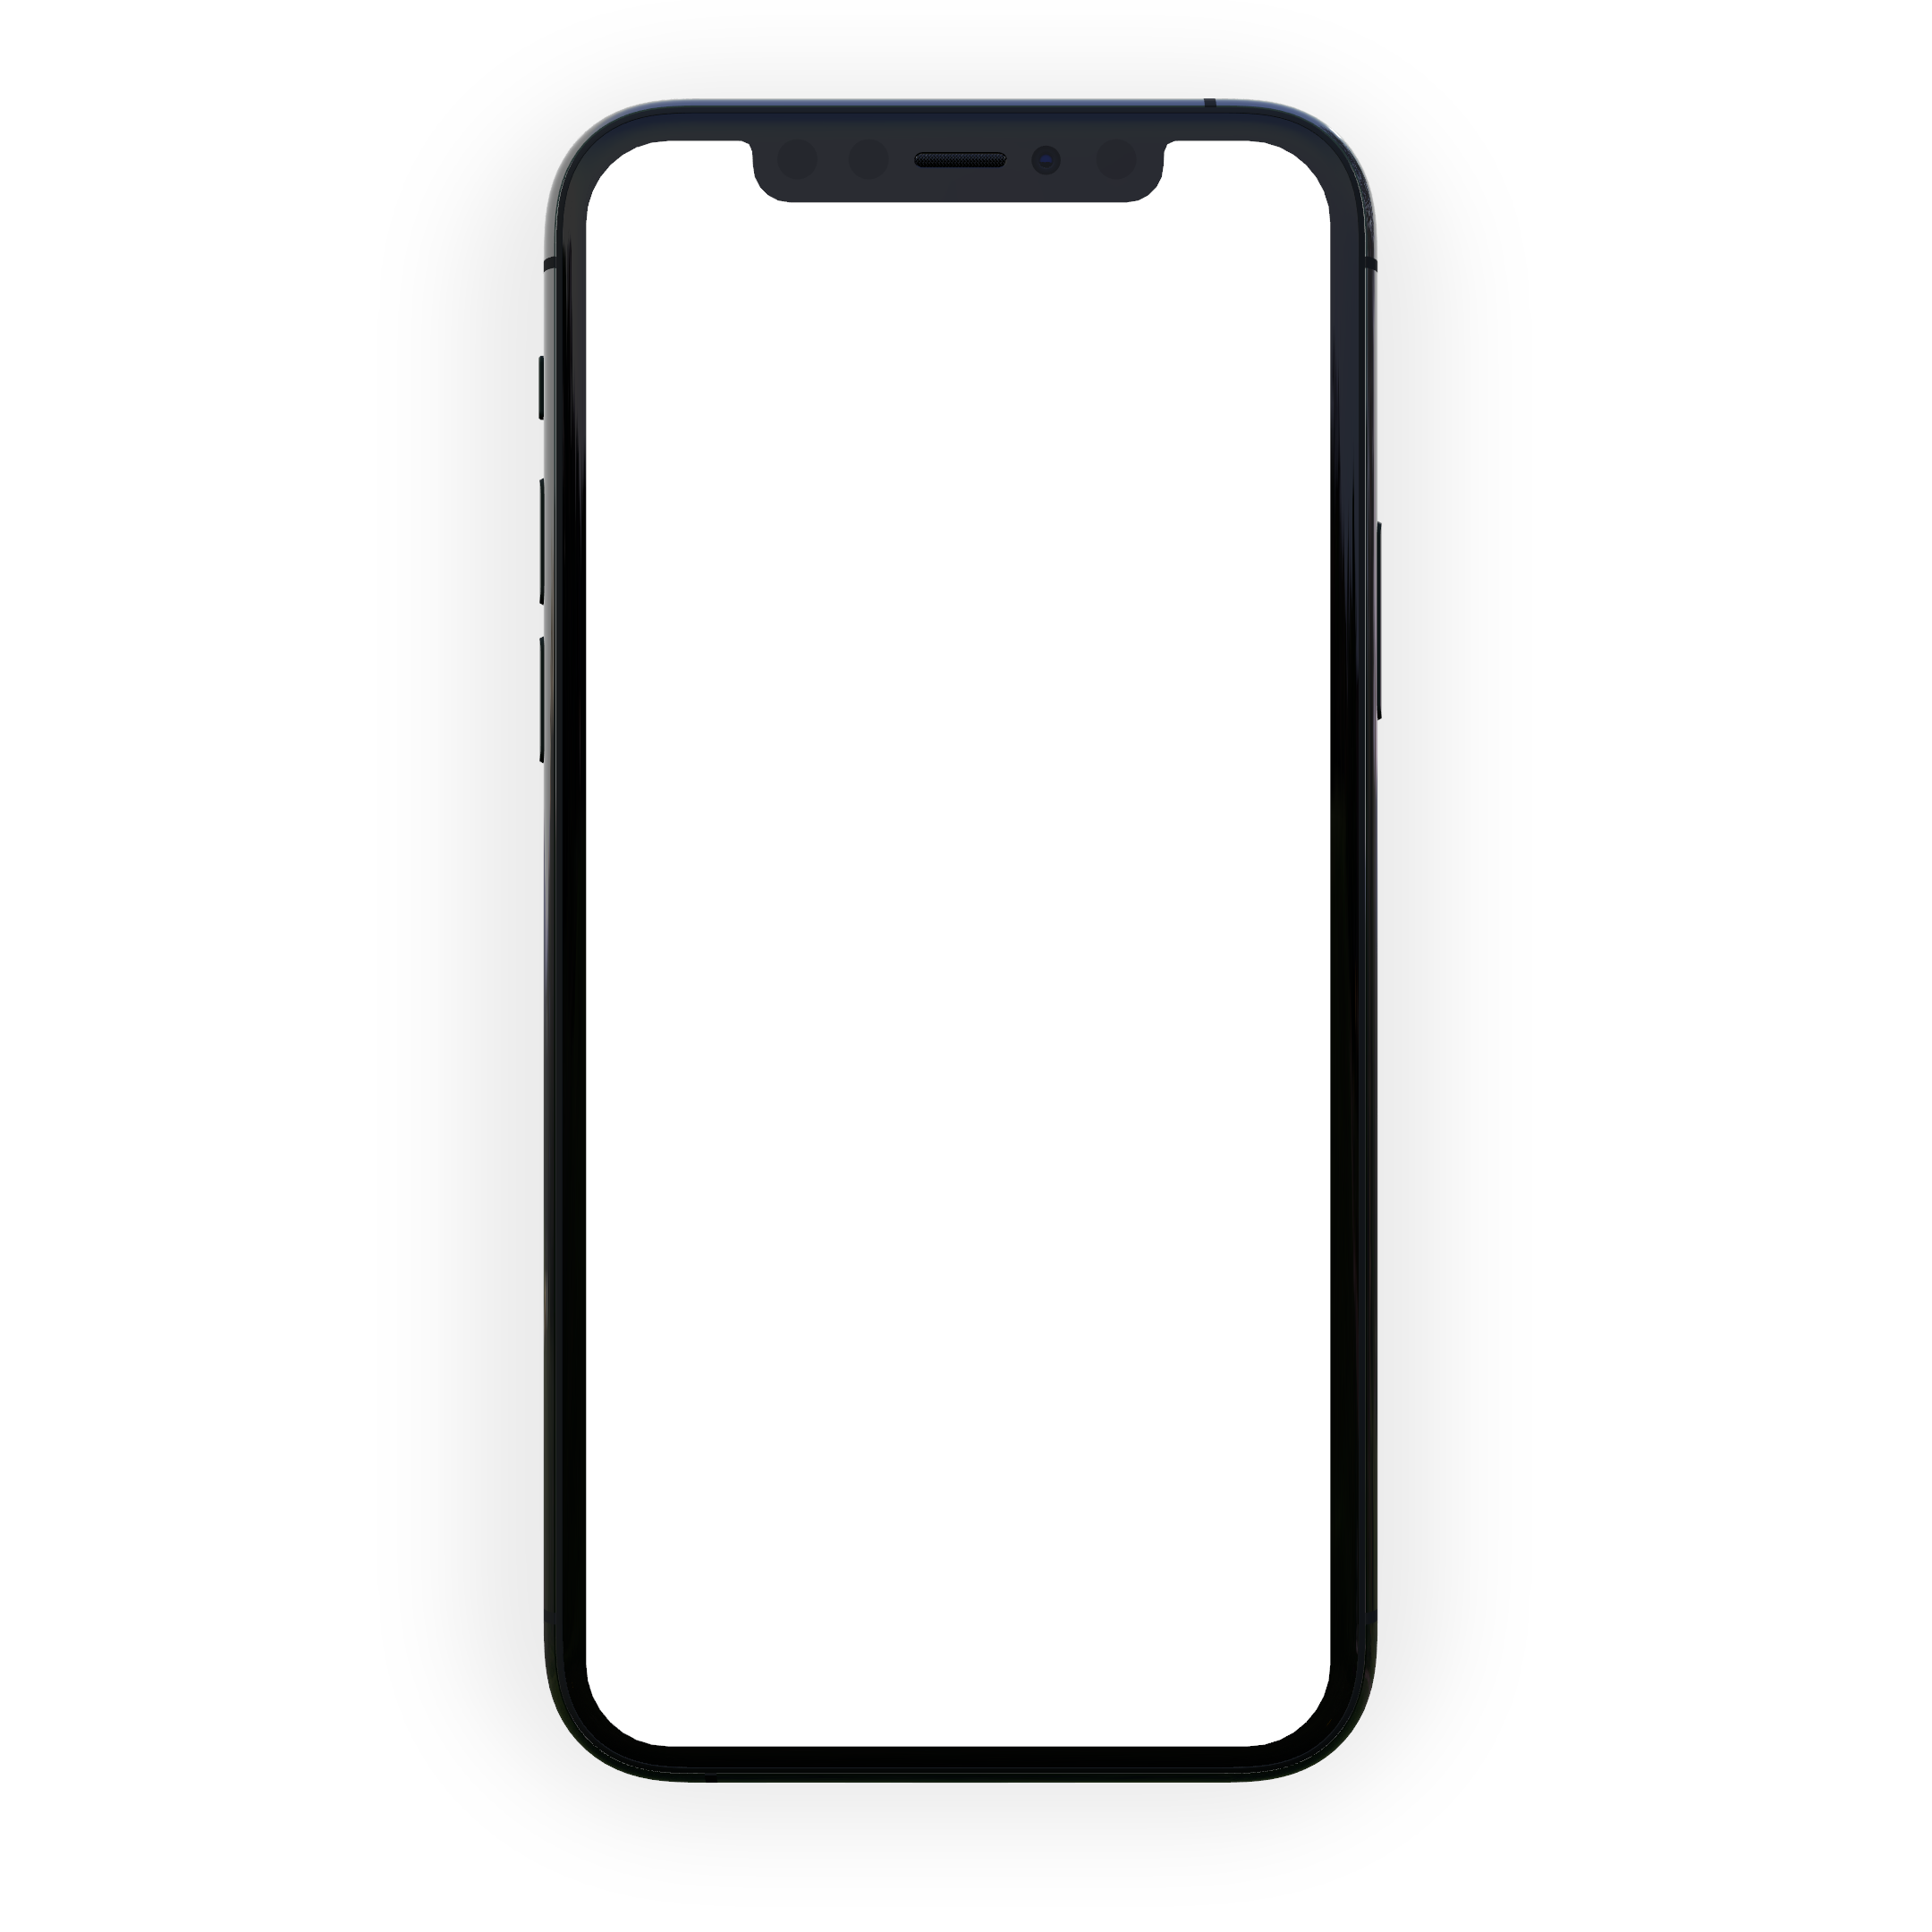 iphone 11 pro mockup rendered